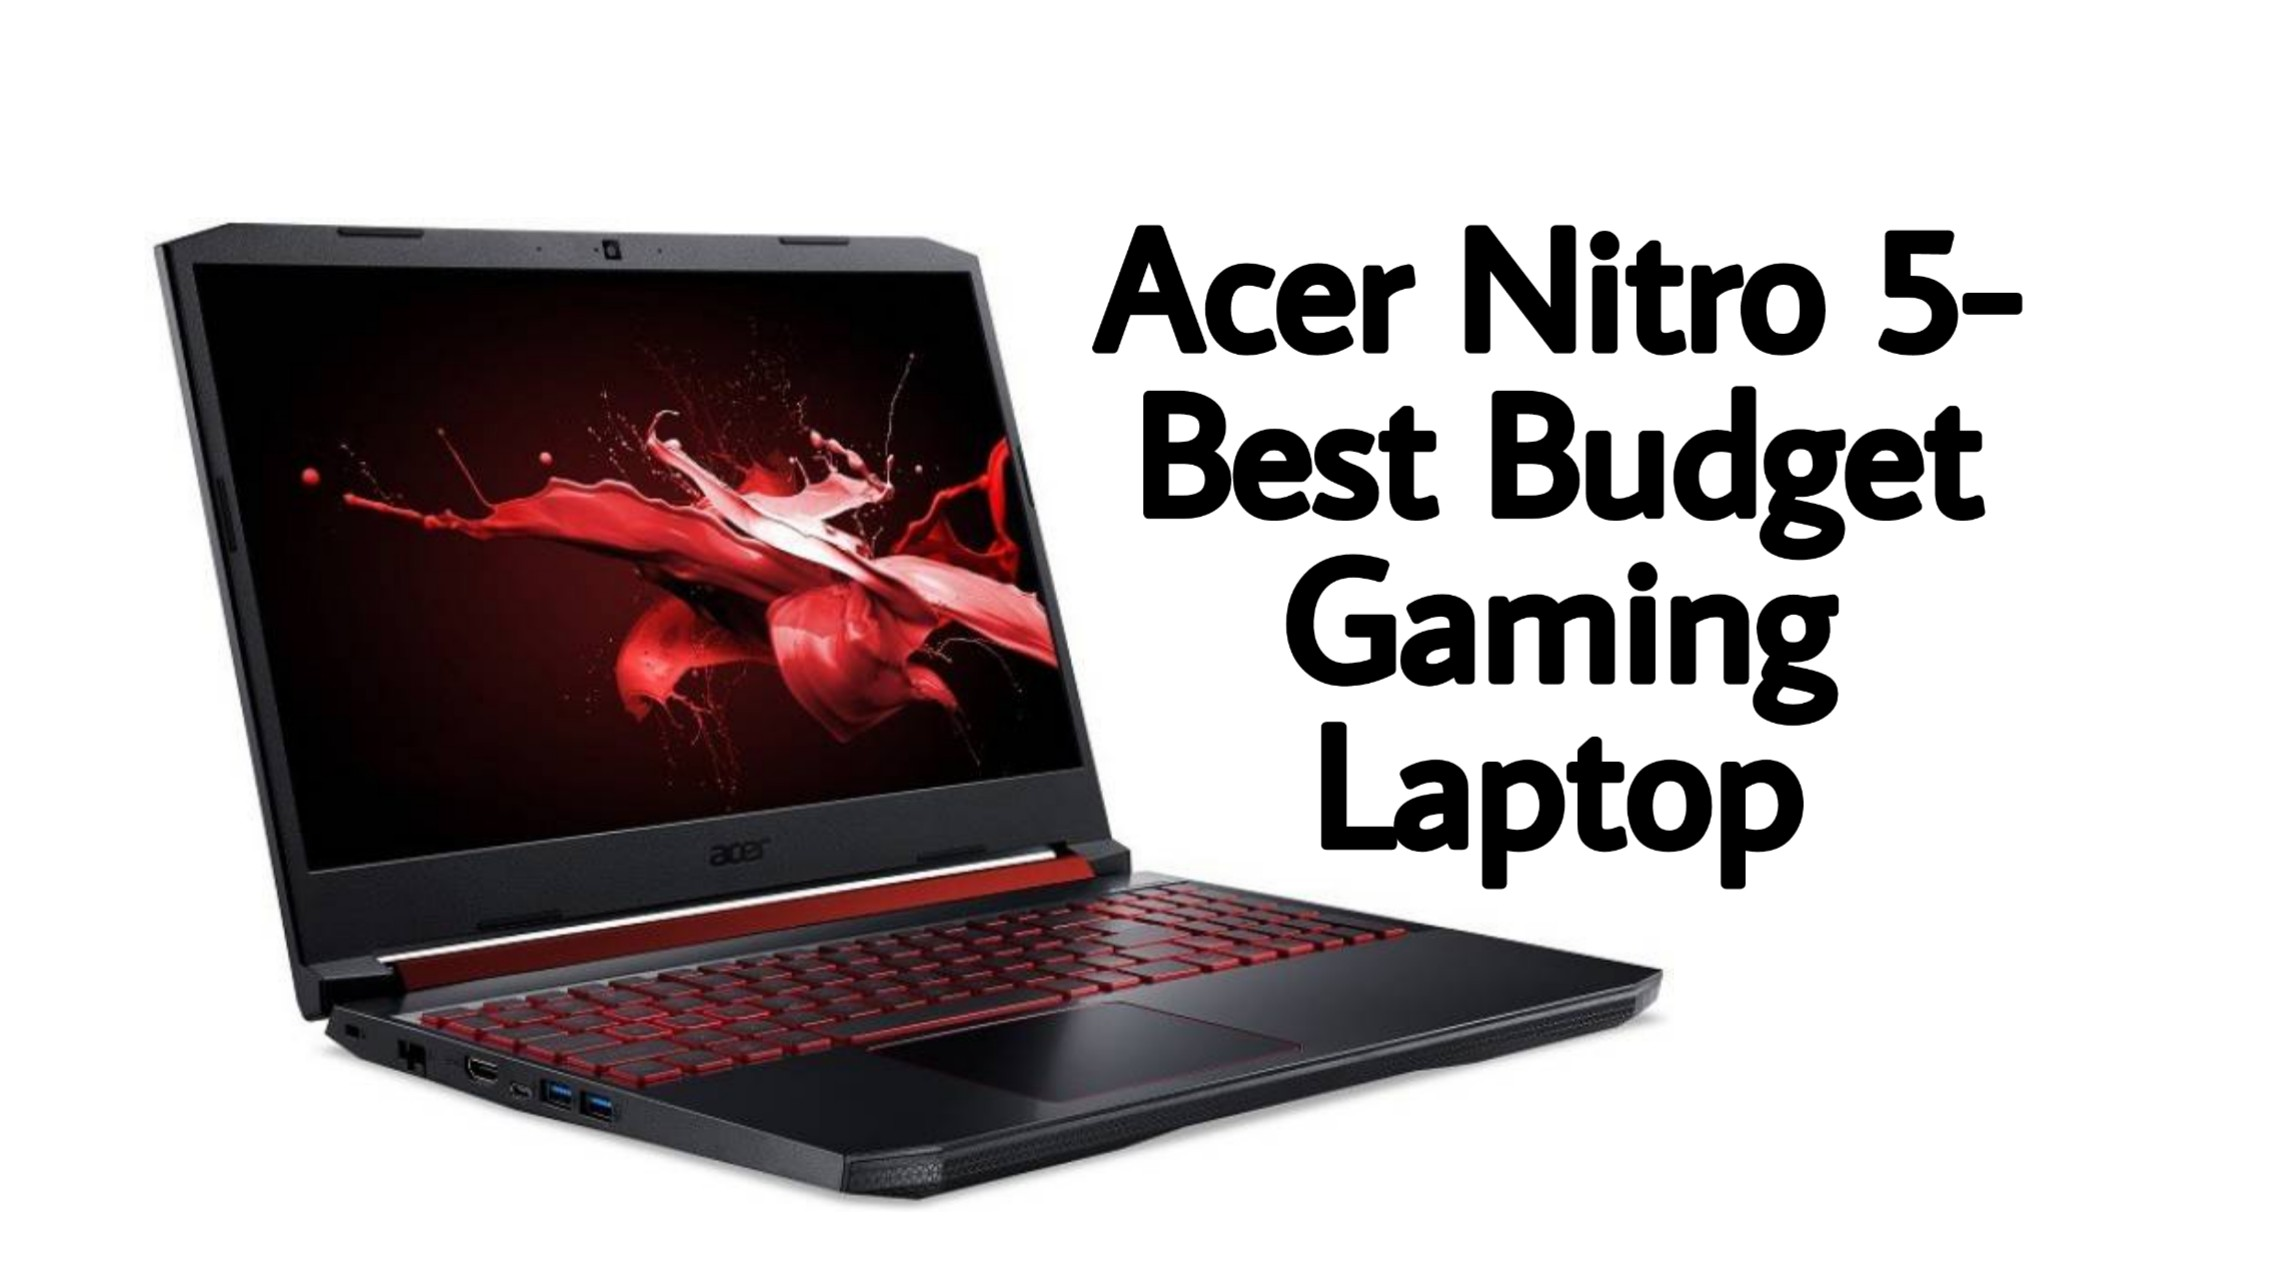 Acer Nitro 5-Best Budget Gaming laptop